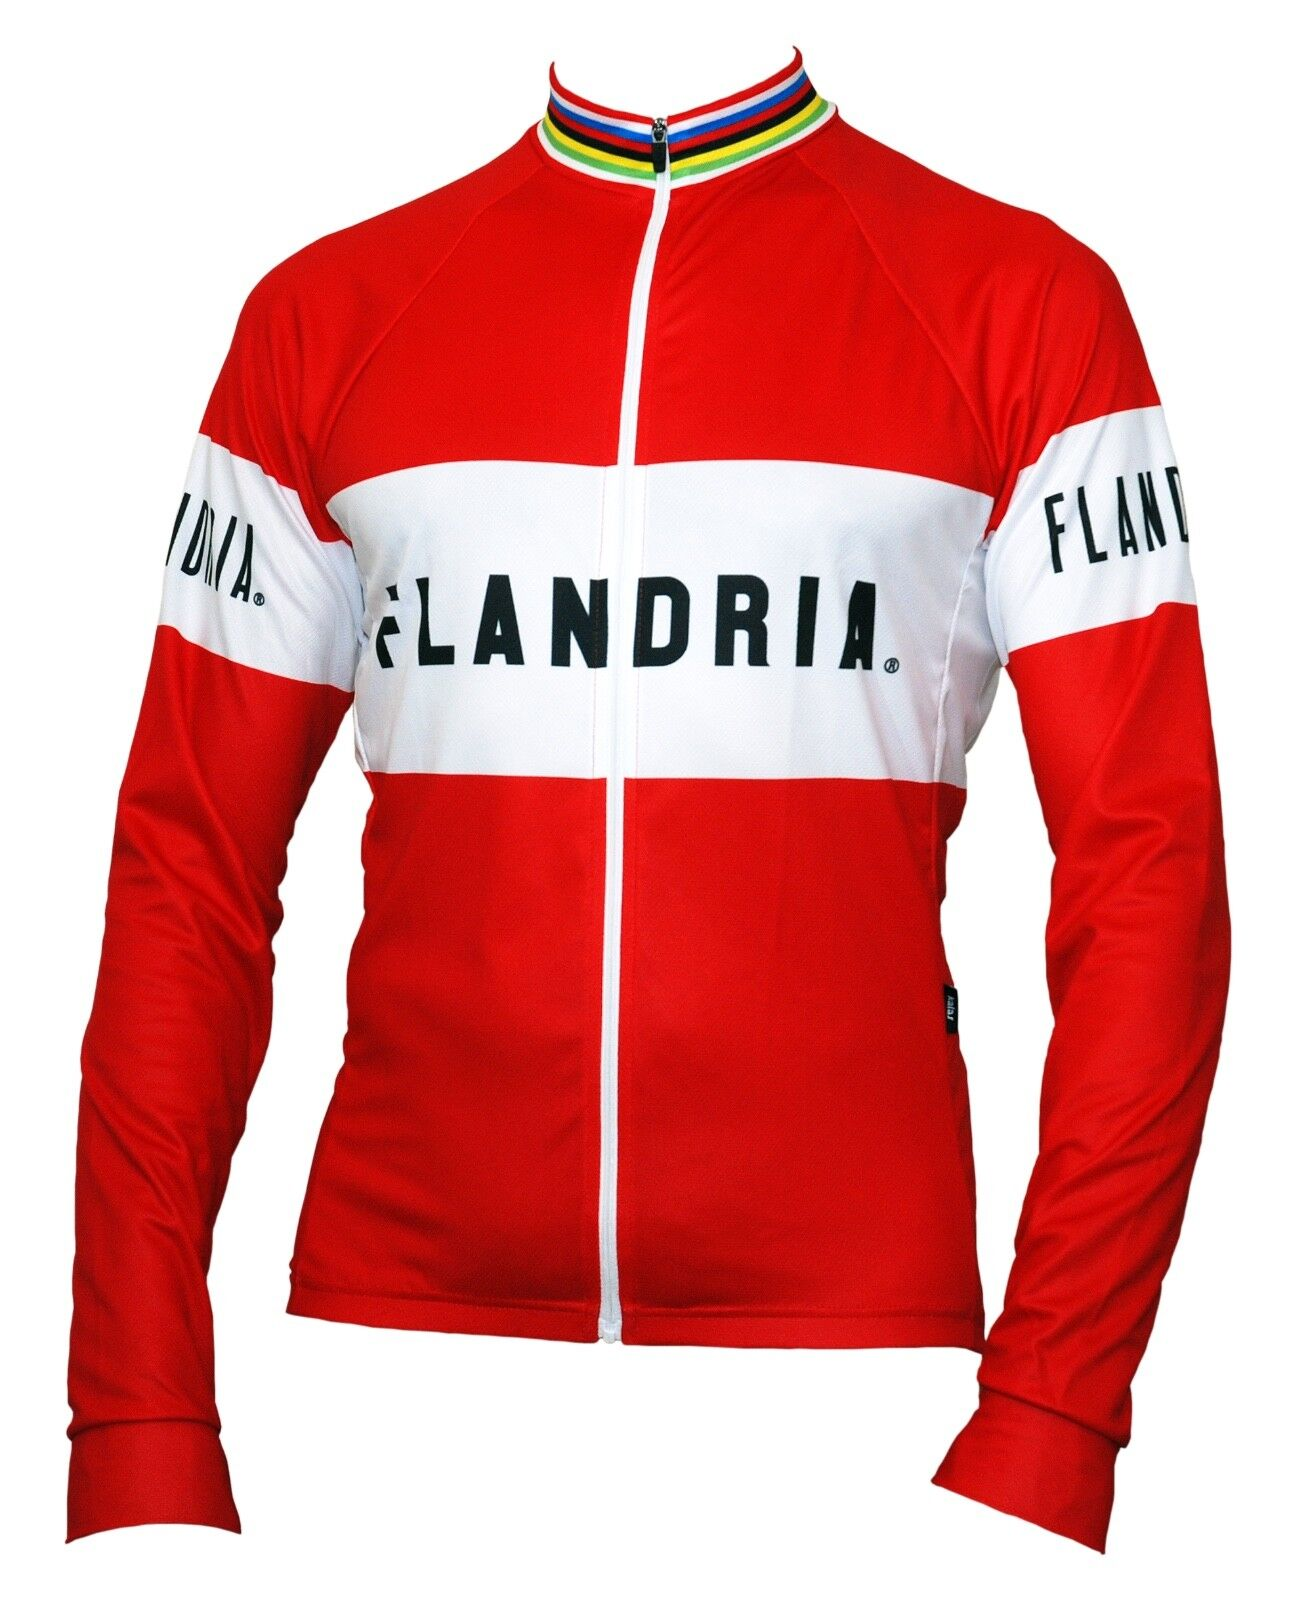 Genuine FLANDRIA Long Sleeve  Cycling Jersey - Retro Design - New  store sale outlet